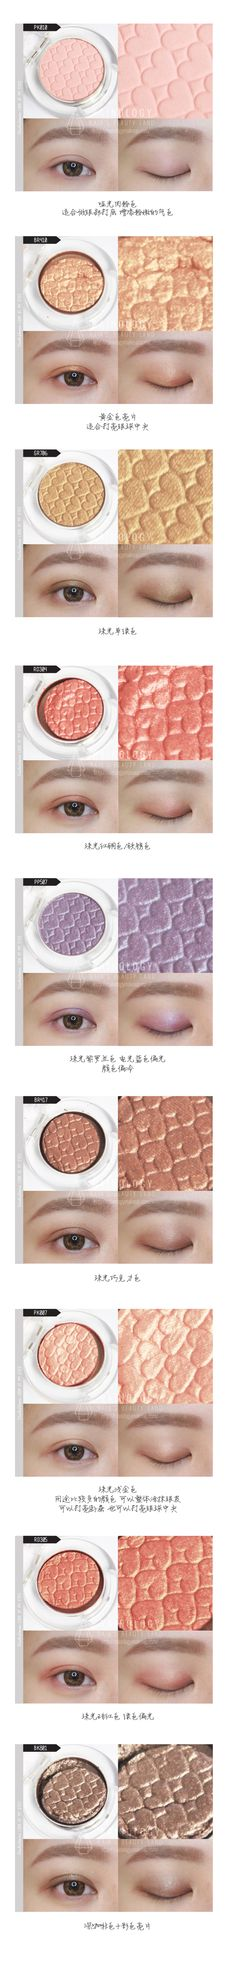 ETUDE HOUSE 秋冬眼影-03 - All the colours look really nice: subtle and shimmery, which is what I like.